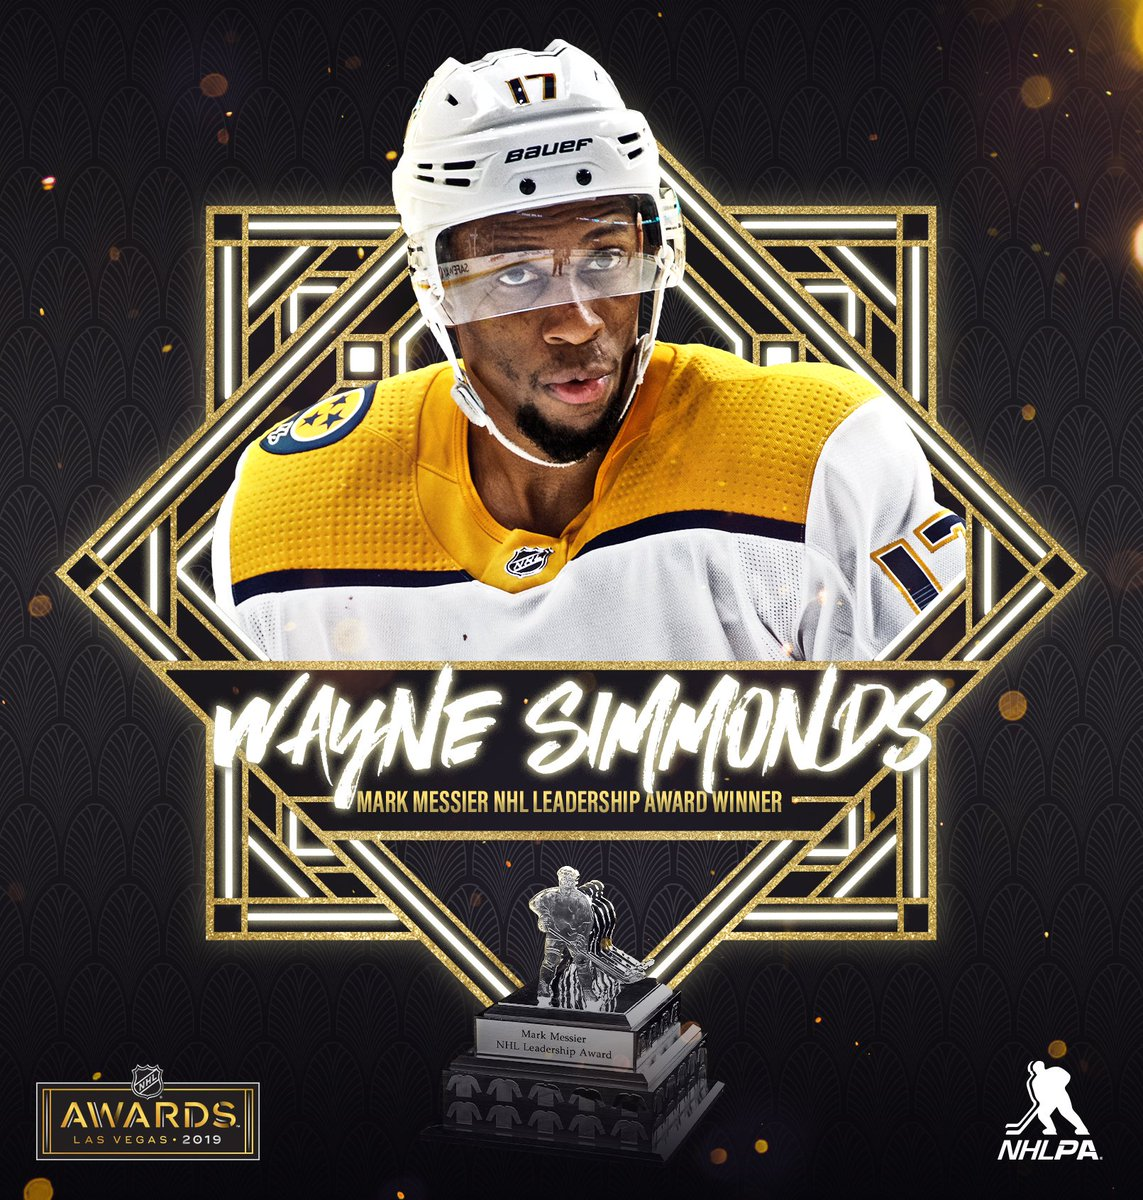 Congratulations to @Simmonds17 on receiving the Mark Messier NHL Leadership Award for growing the game of hockey in his community and exemplifying leadership qualities to his team both on and off the ice! #NHLAwards<br>http://pic.twitter.com/SVQZbV8TVJ